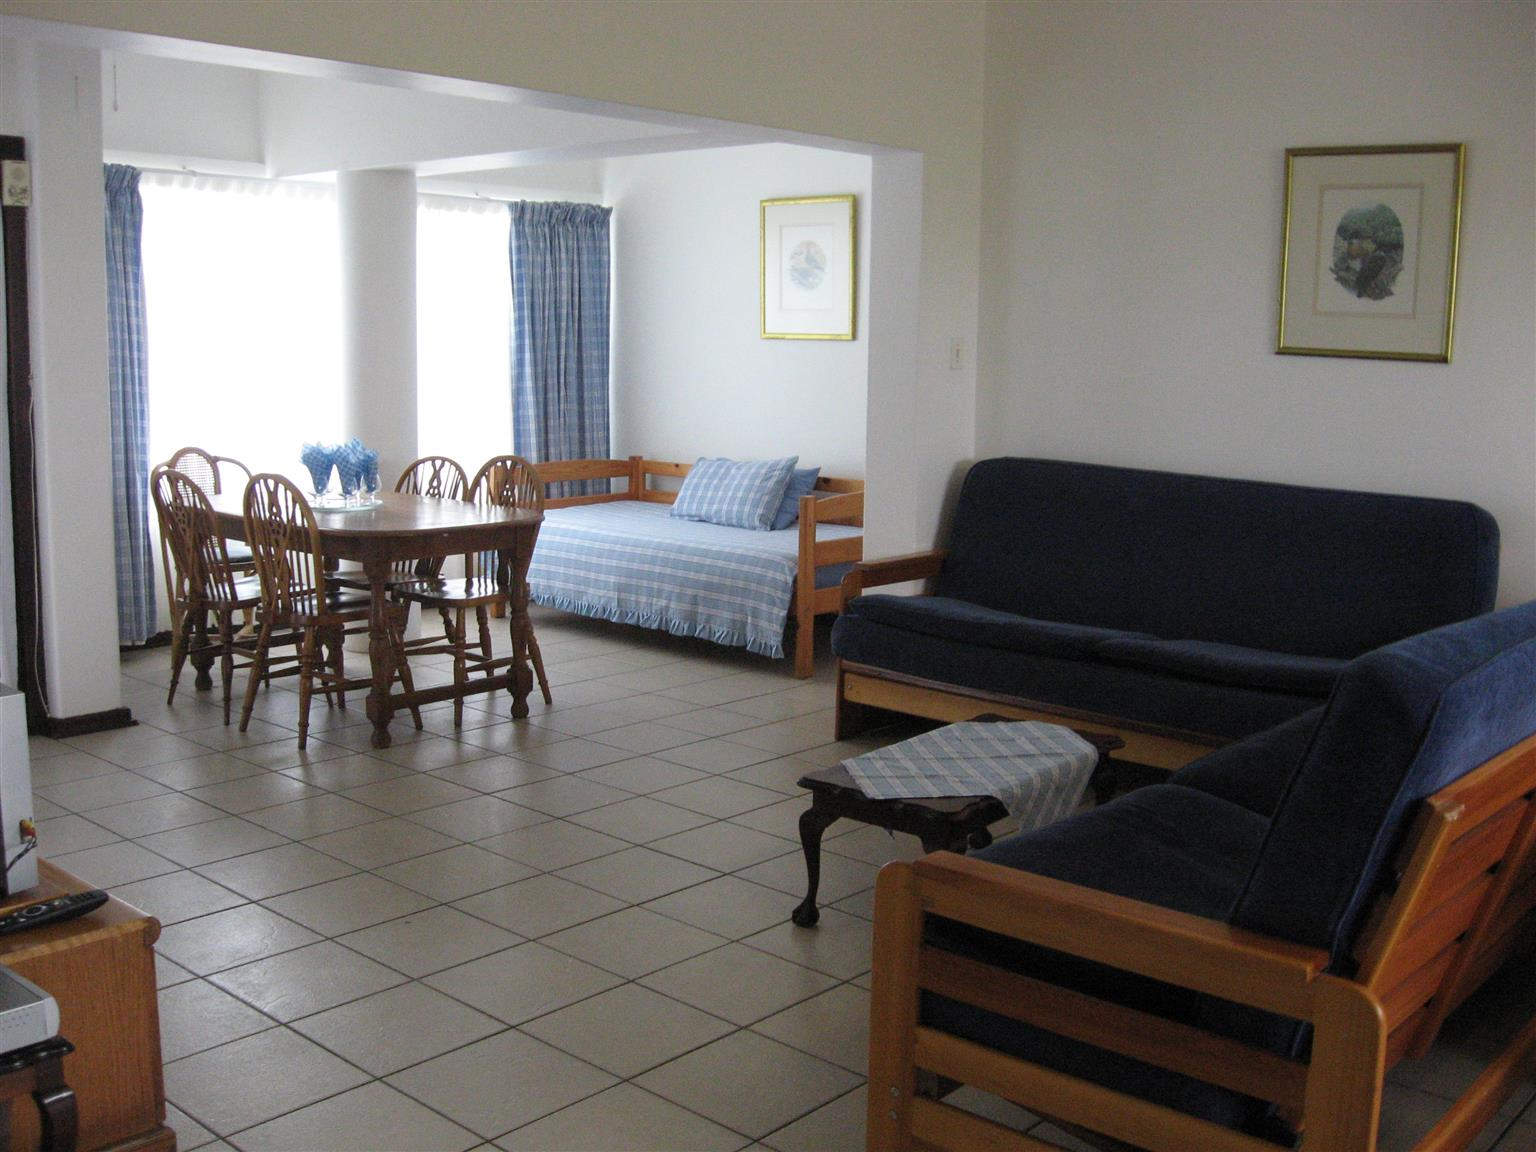 GROUND FLOOR 1 BEDROOM FURNISHED FLAT R4350 p.m. SHELLY BEACH ST MIKE'S UVONGO AVAILABLE JANUARY 2018